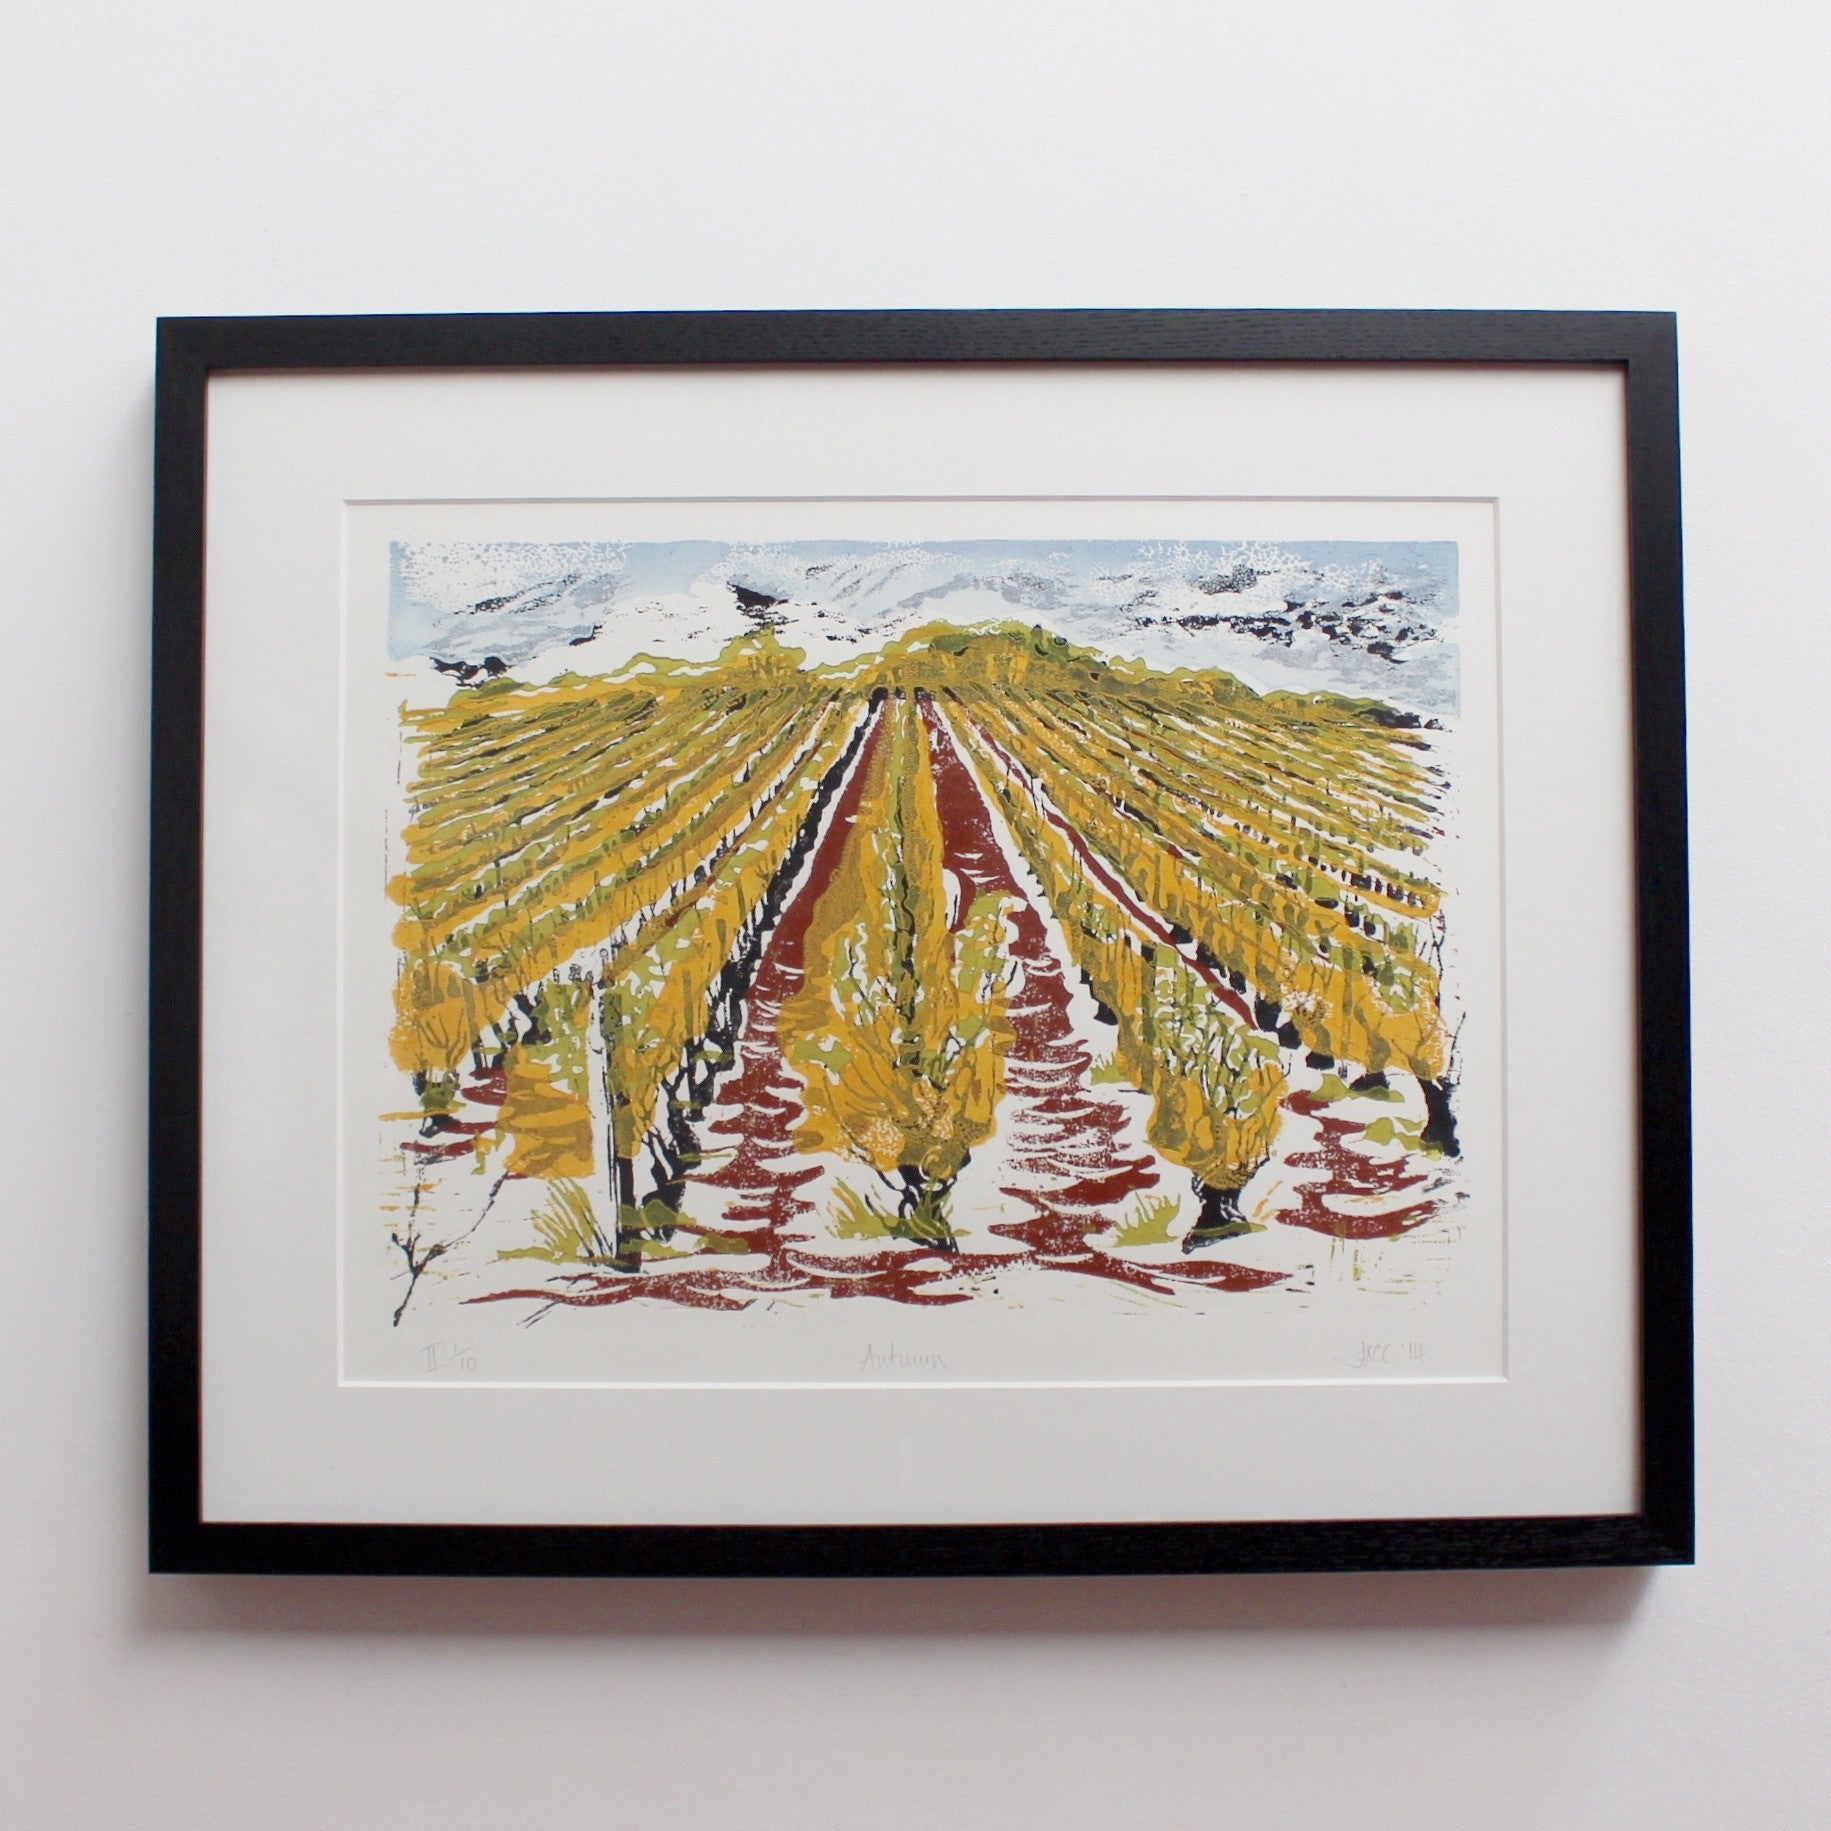 'Four Seasons Vineyard View in Burgundy' by Jonquil Cook (2007 & 2014)